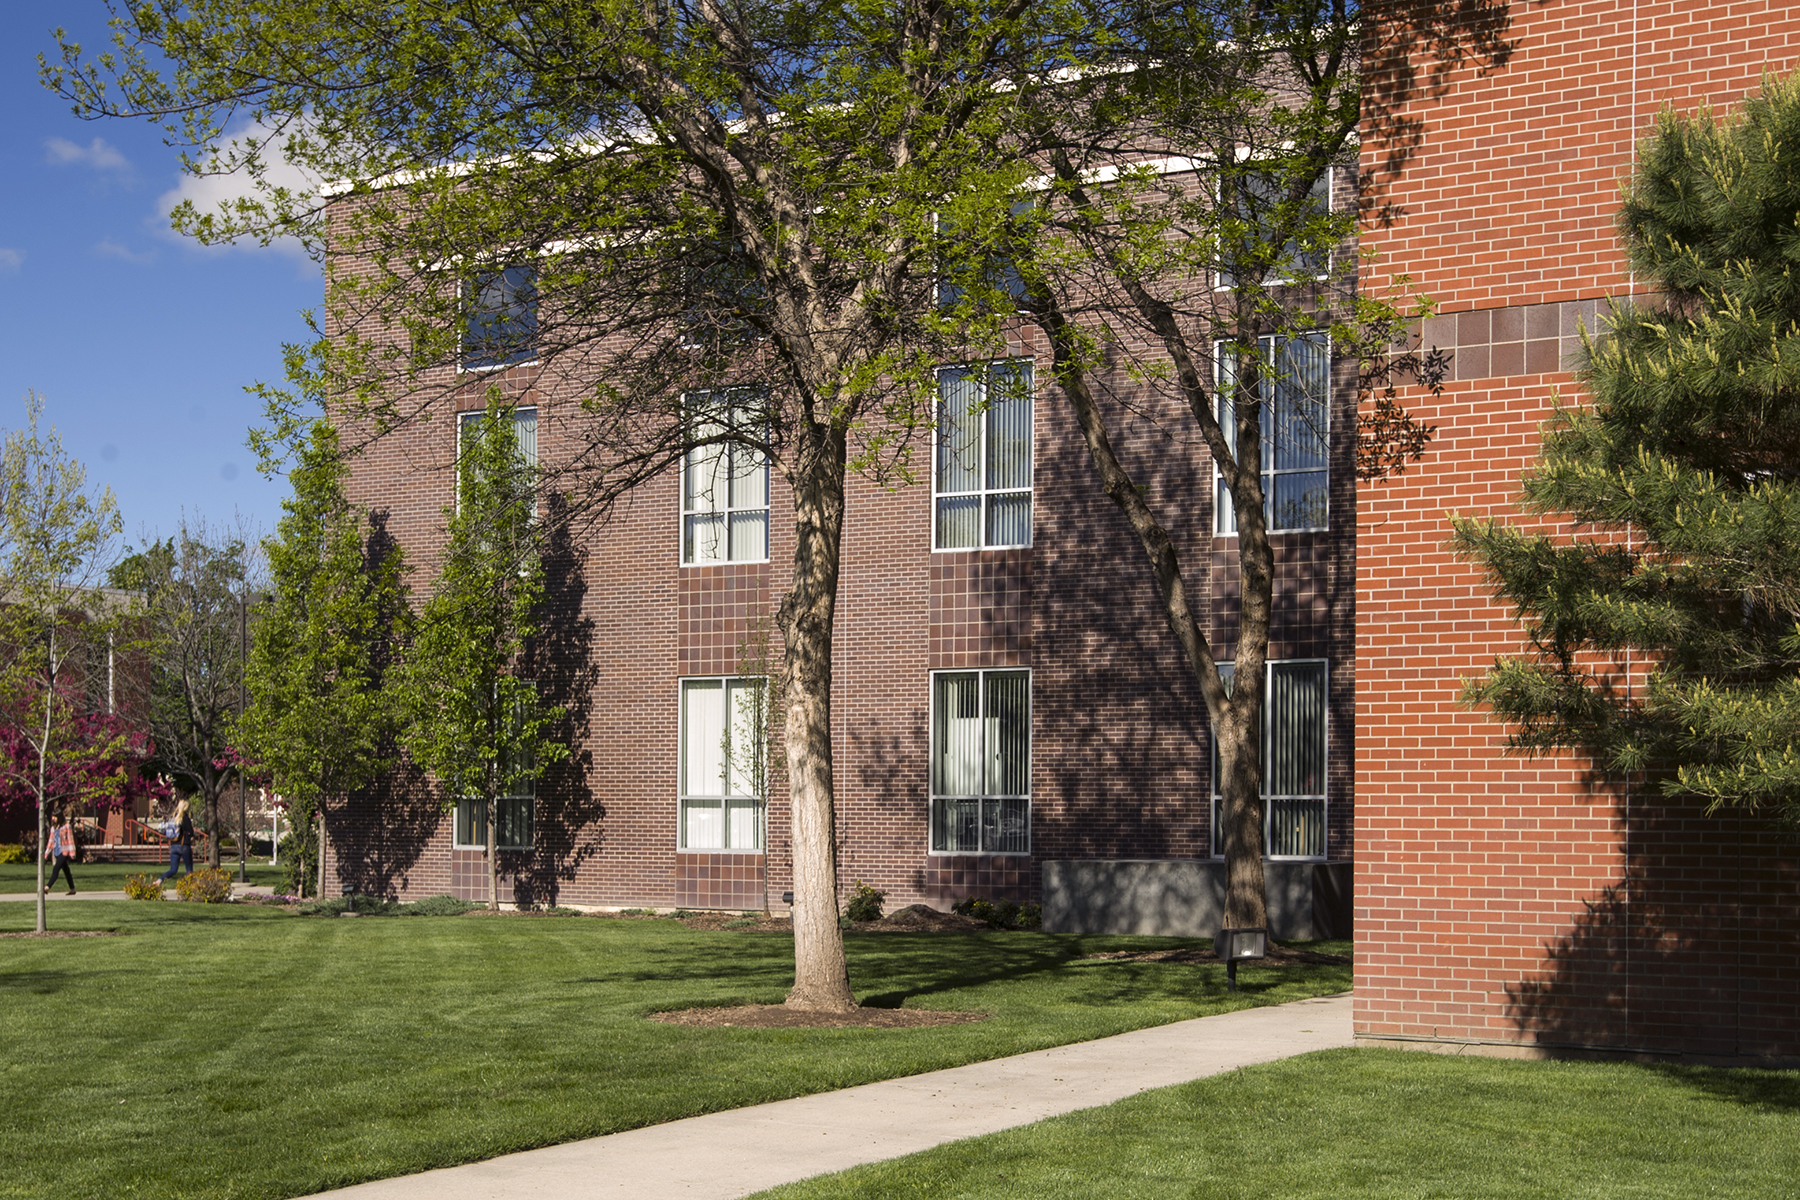 West facing view of the Library showing the difference in brick color of the 1995 addition.